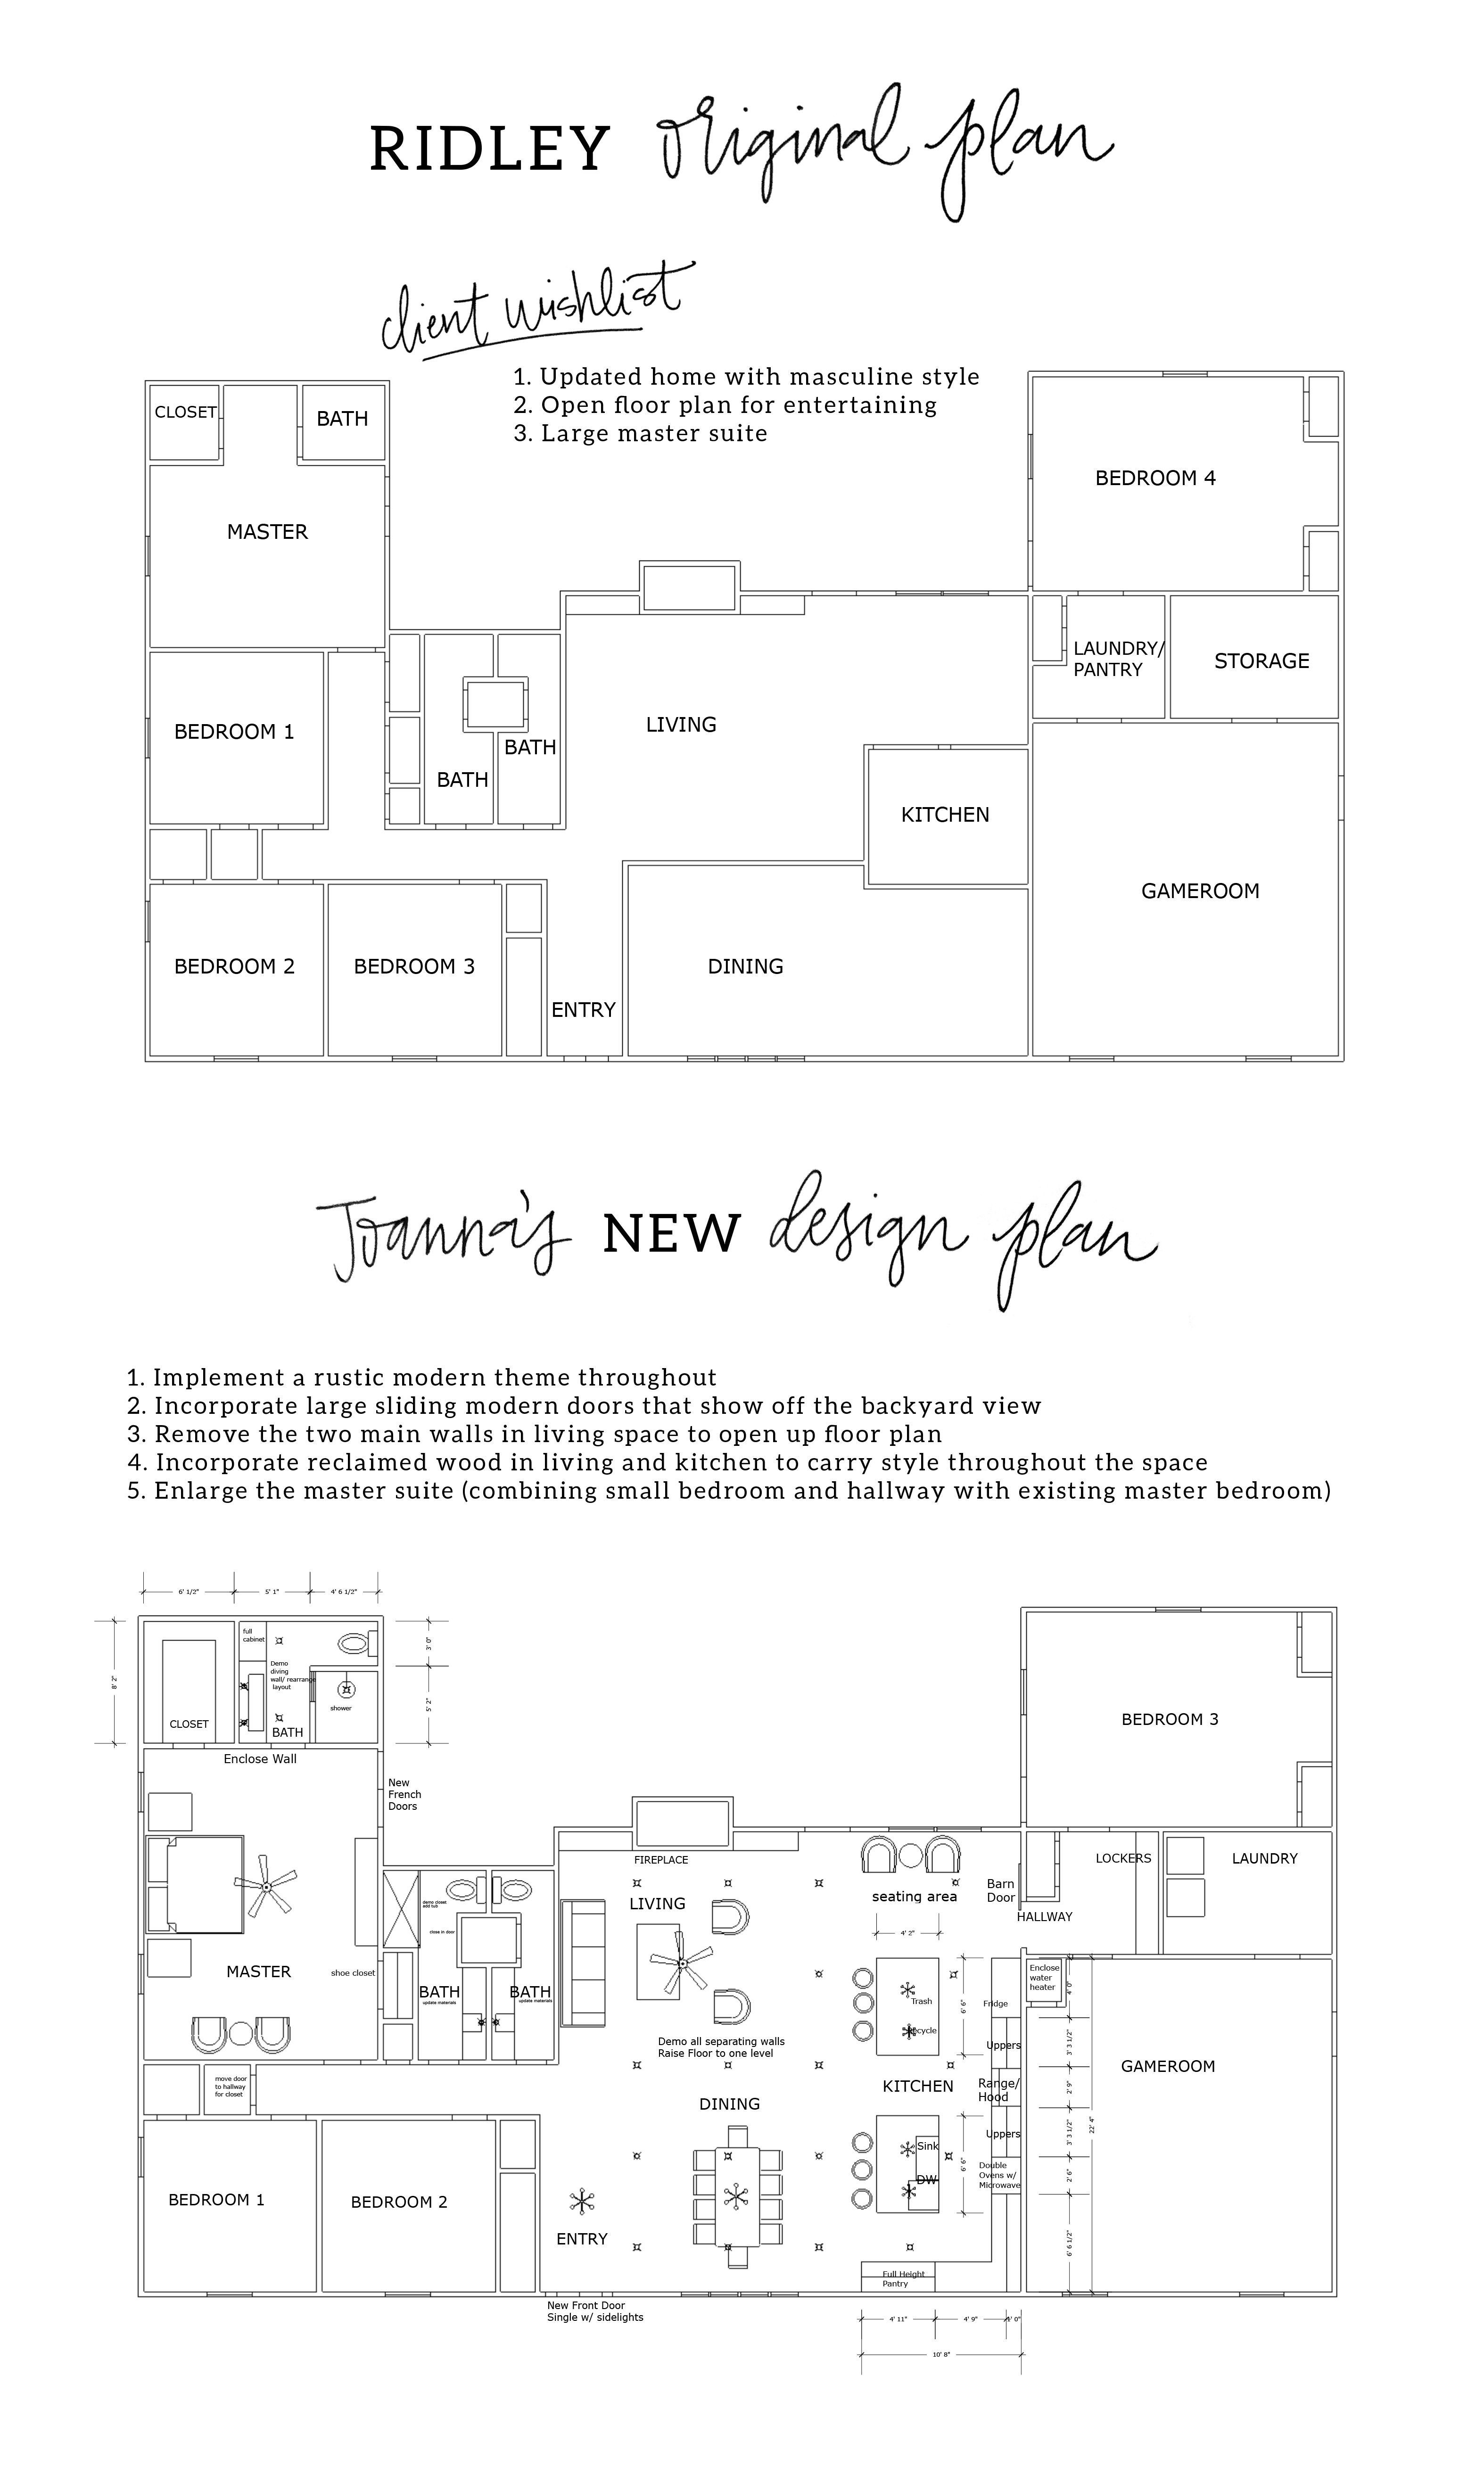 fixer upper house joanna gaines and fixer upper joanna dansby floorplan options